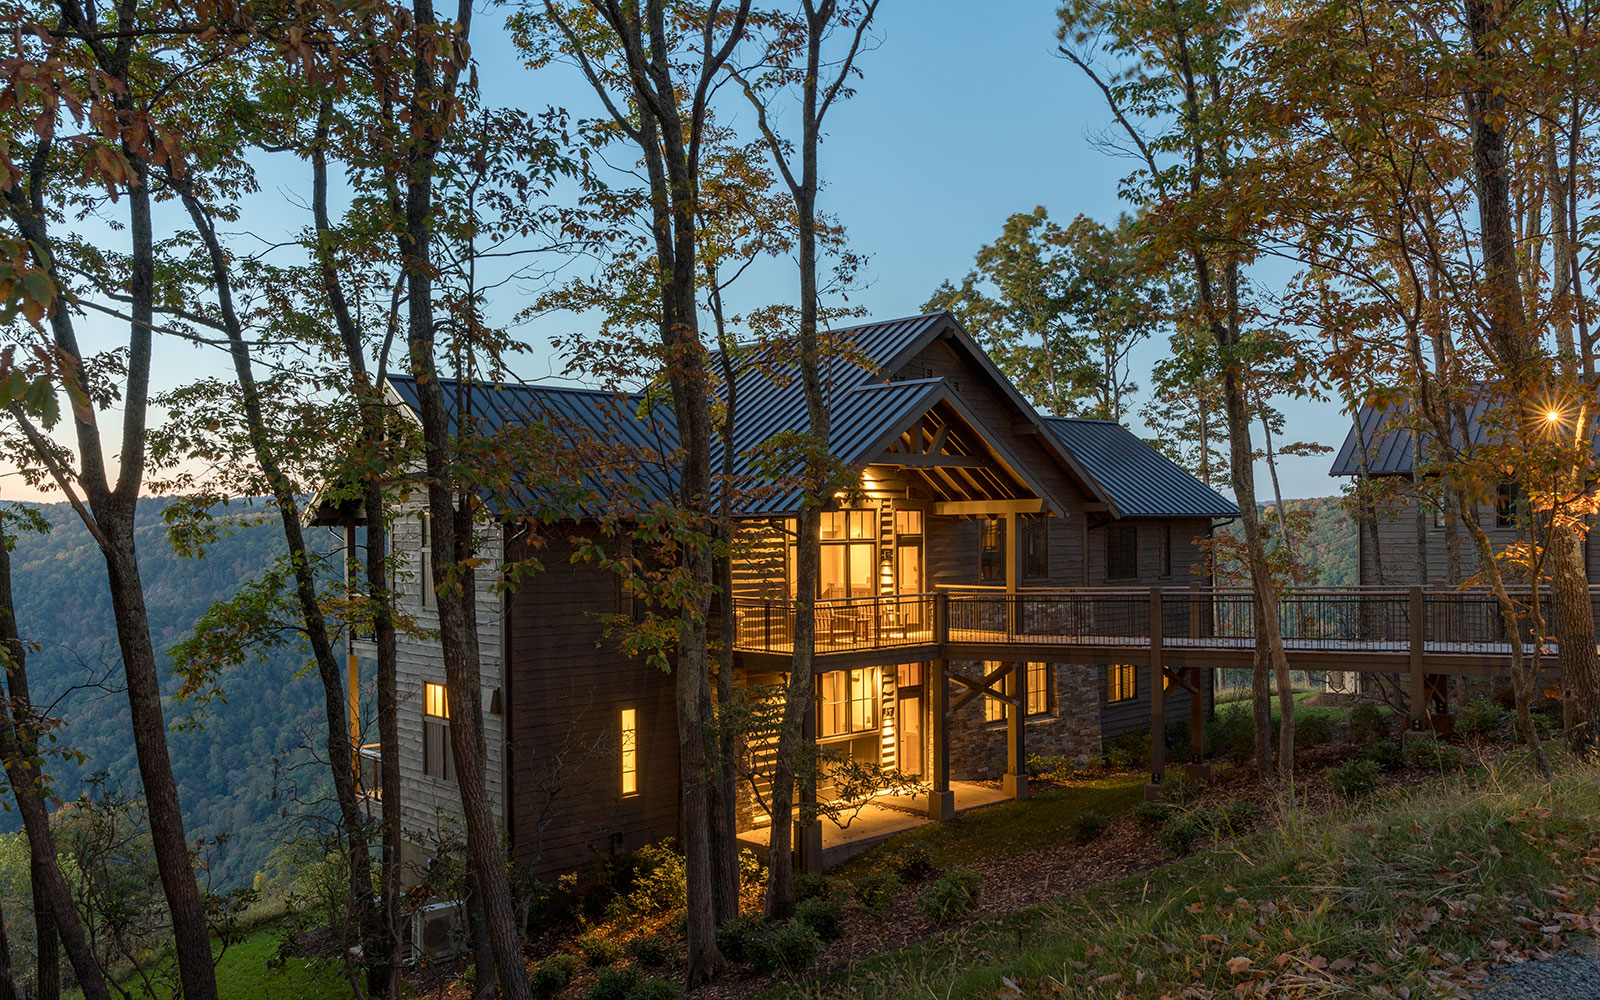 No. 13: The Lodge & Cottages at Primland,  Meadows of Dan,  Virginia